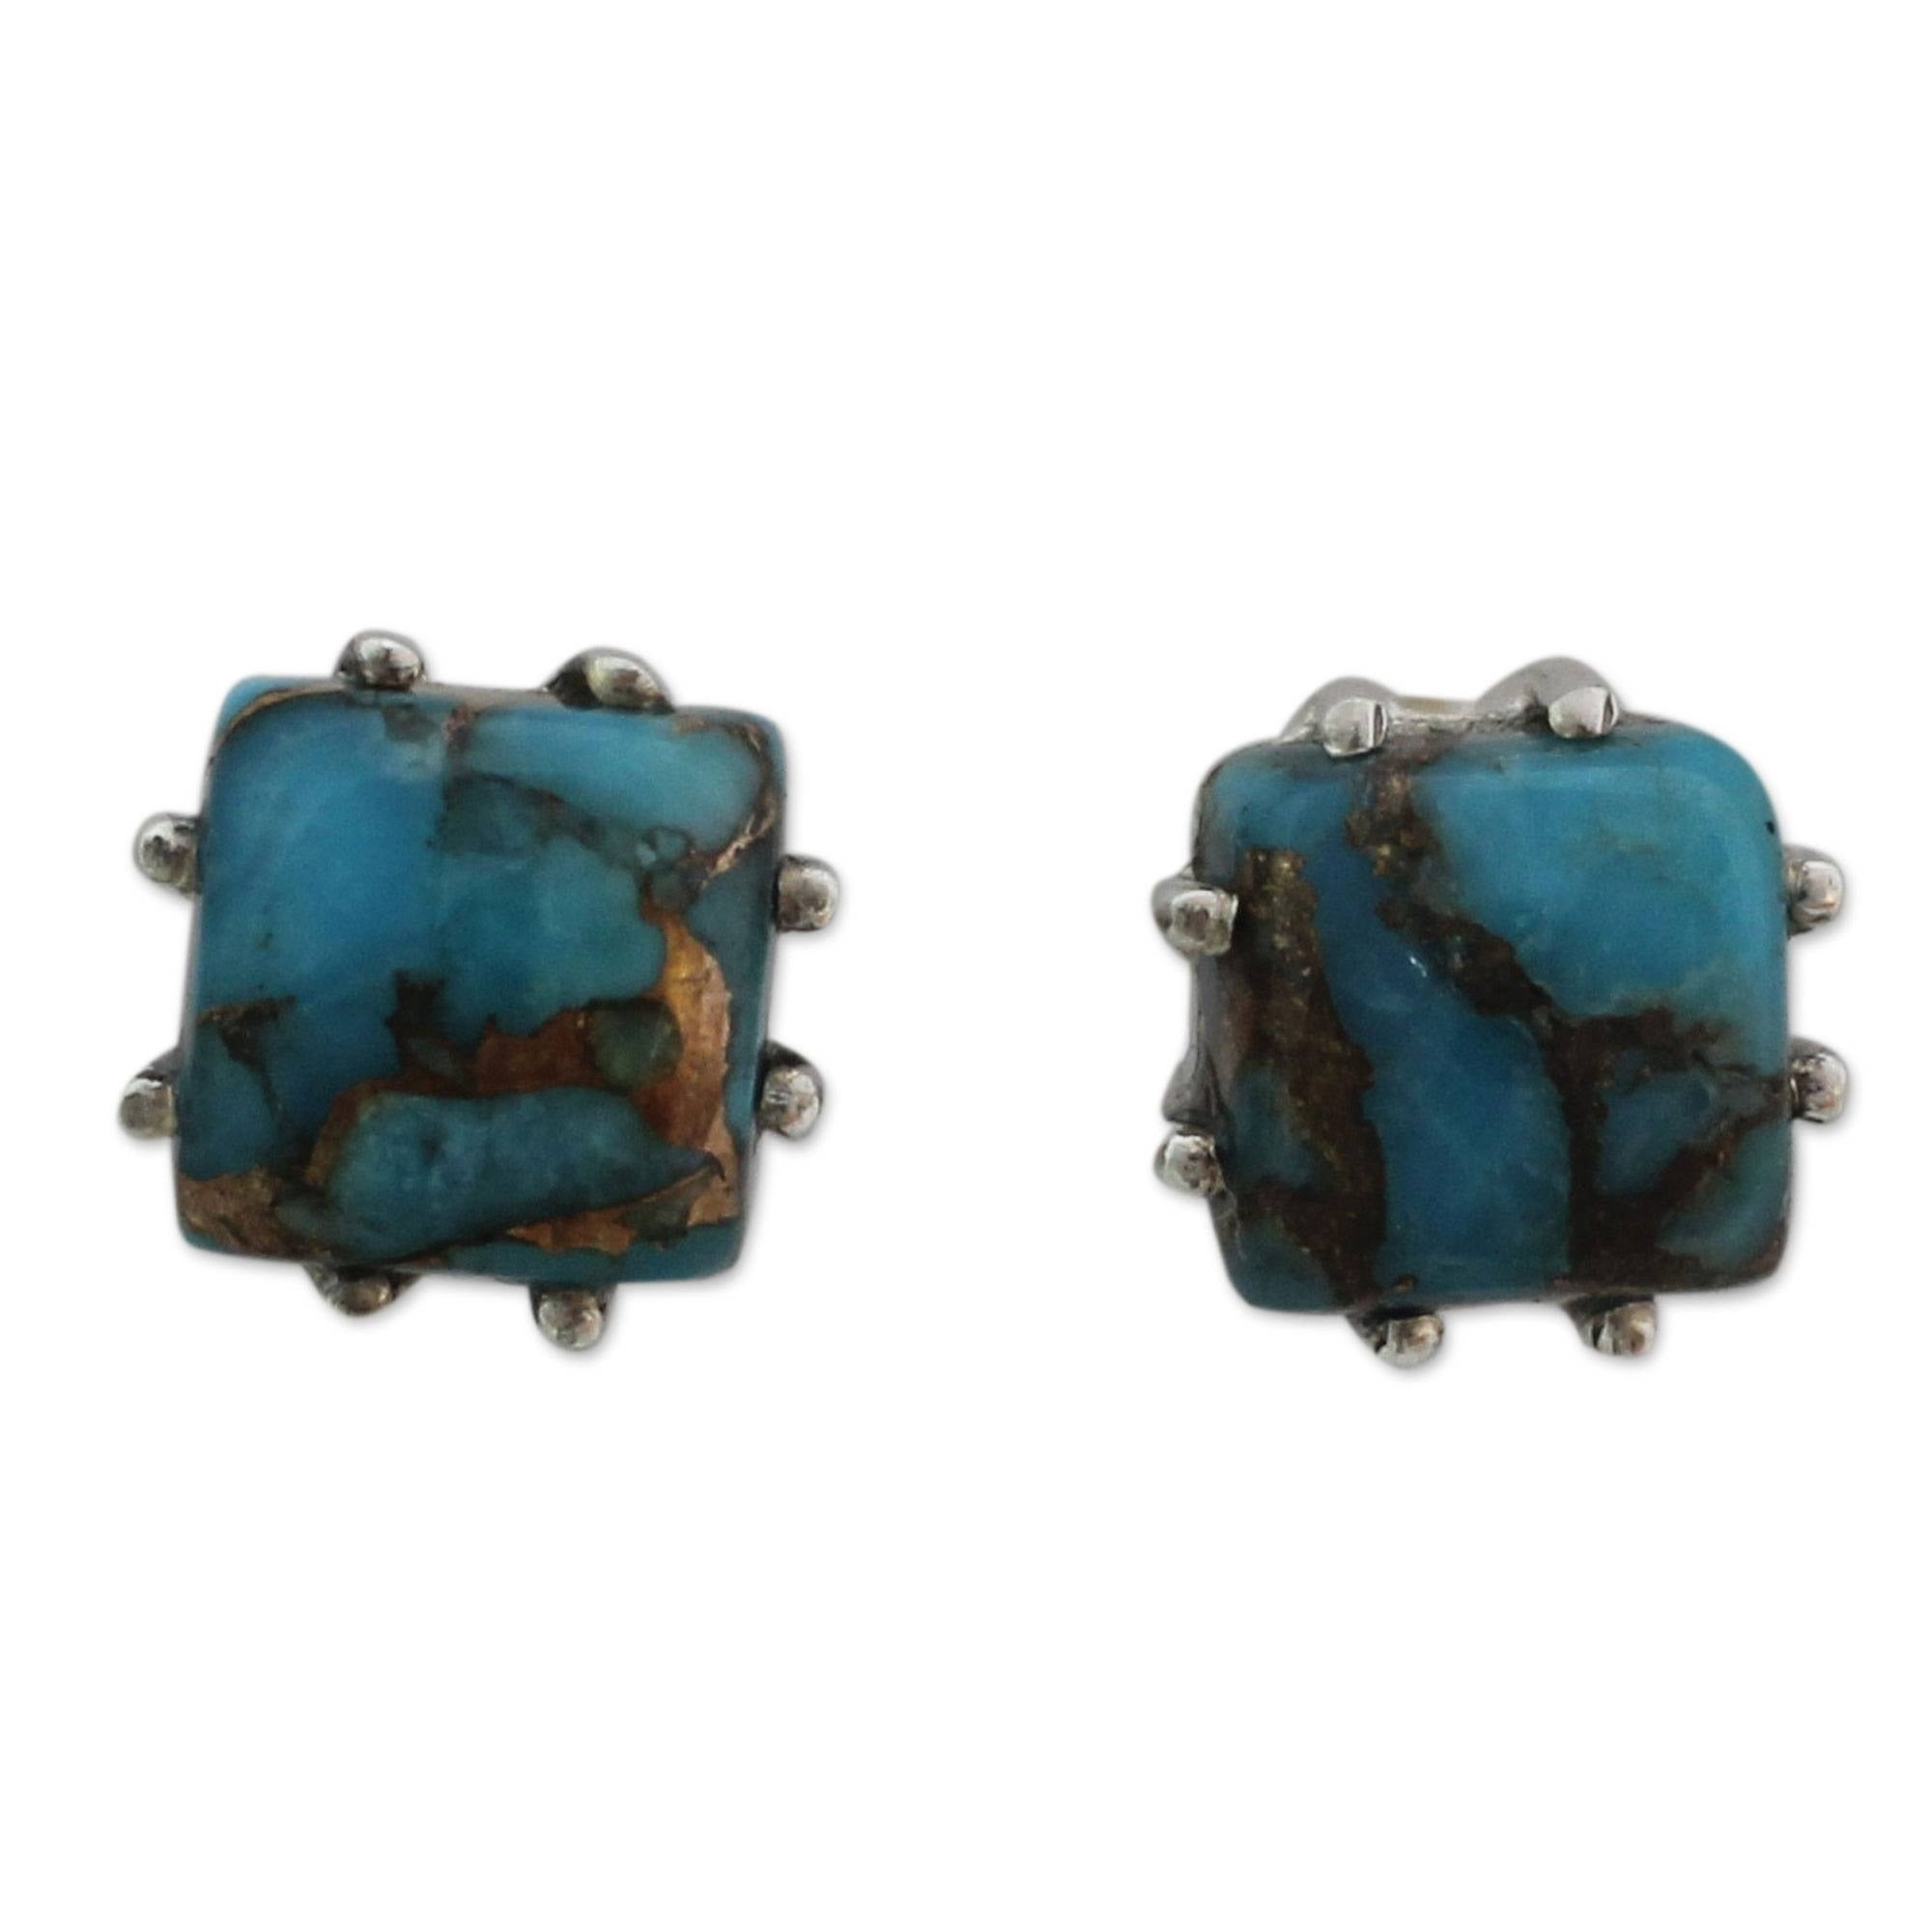 23704fd6e Shop Handmade Ocean Sky Composite Turquoise Gemstones with Claw Setting of Sterling  Silver Womens Post Earrings (India) - Free Shipping On Orders Over $45 ...